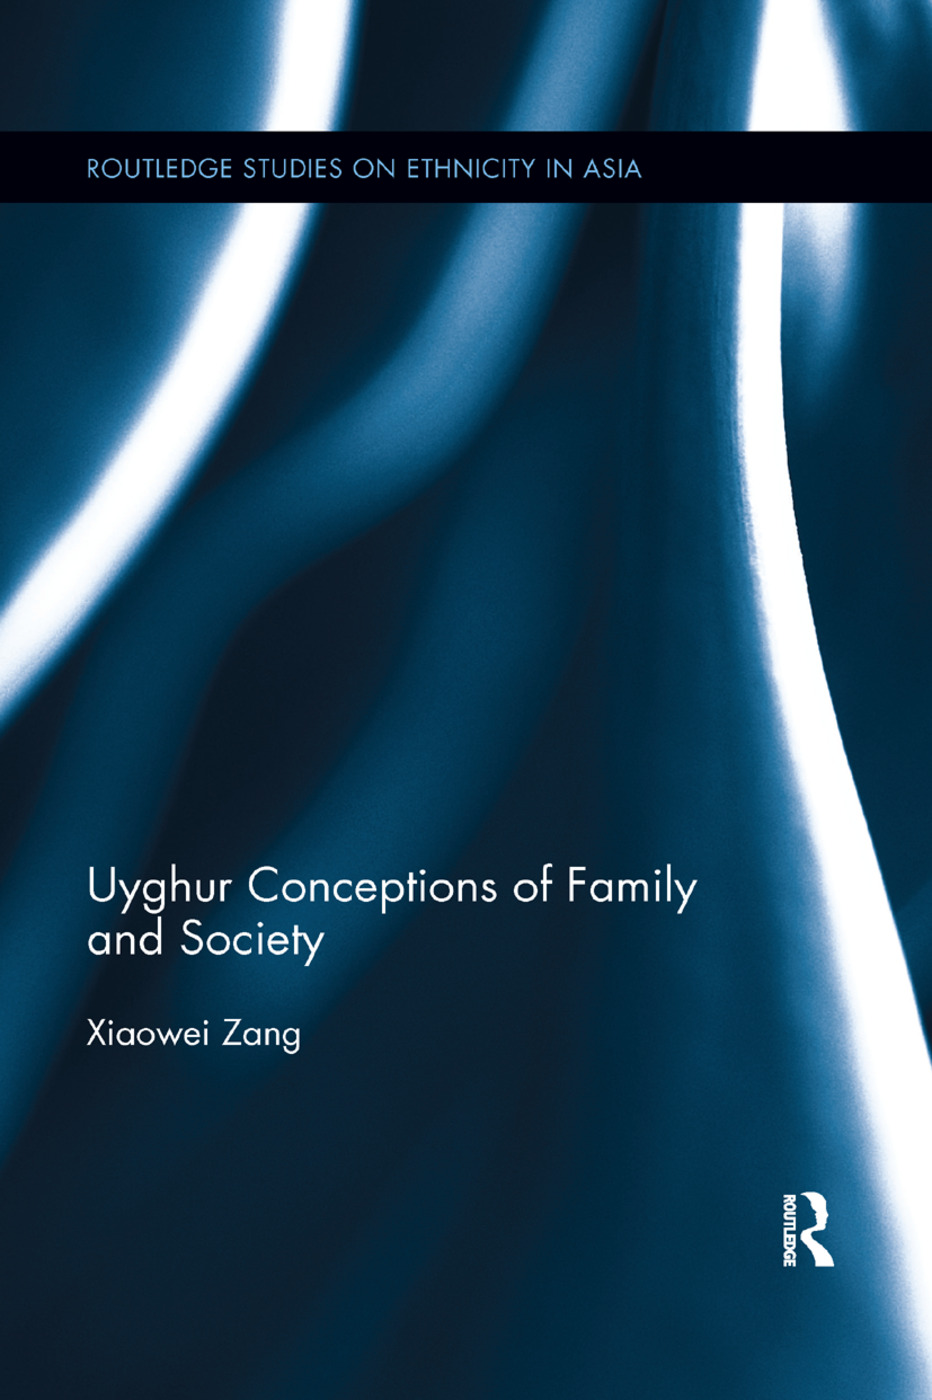 Uyghur Conceptions of Family and Society: Habits of the Uyghur Heart book cover